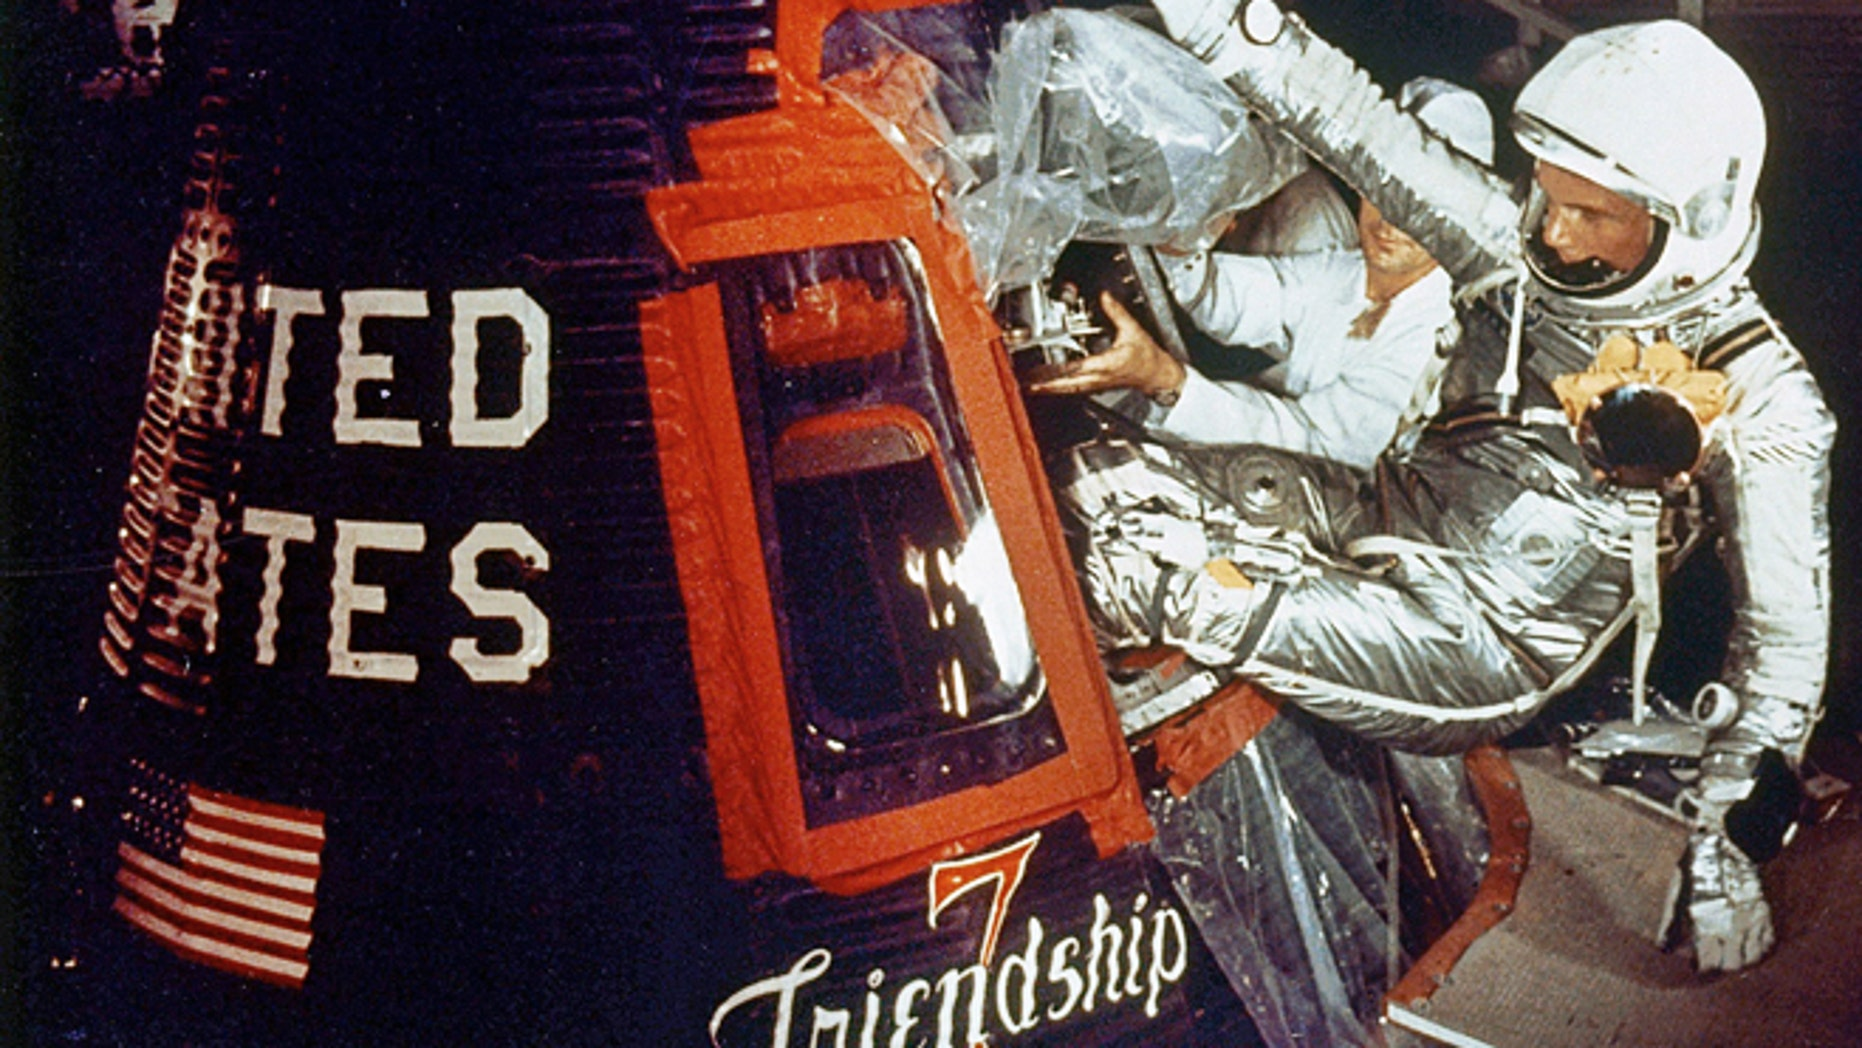 Feb. 20, 1962: Astronaut John Glenn climbs into the Friendship 7 space capsule atop an Atlas rocket at Cape Canaveral, Fla. for the flight which made him the first American to orbit the earth.